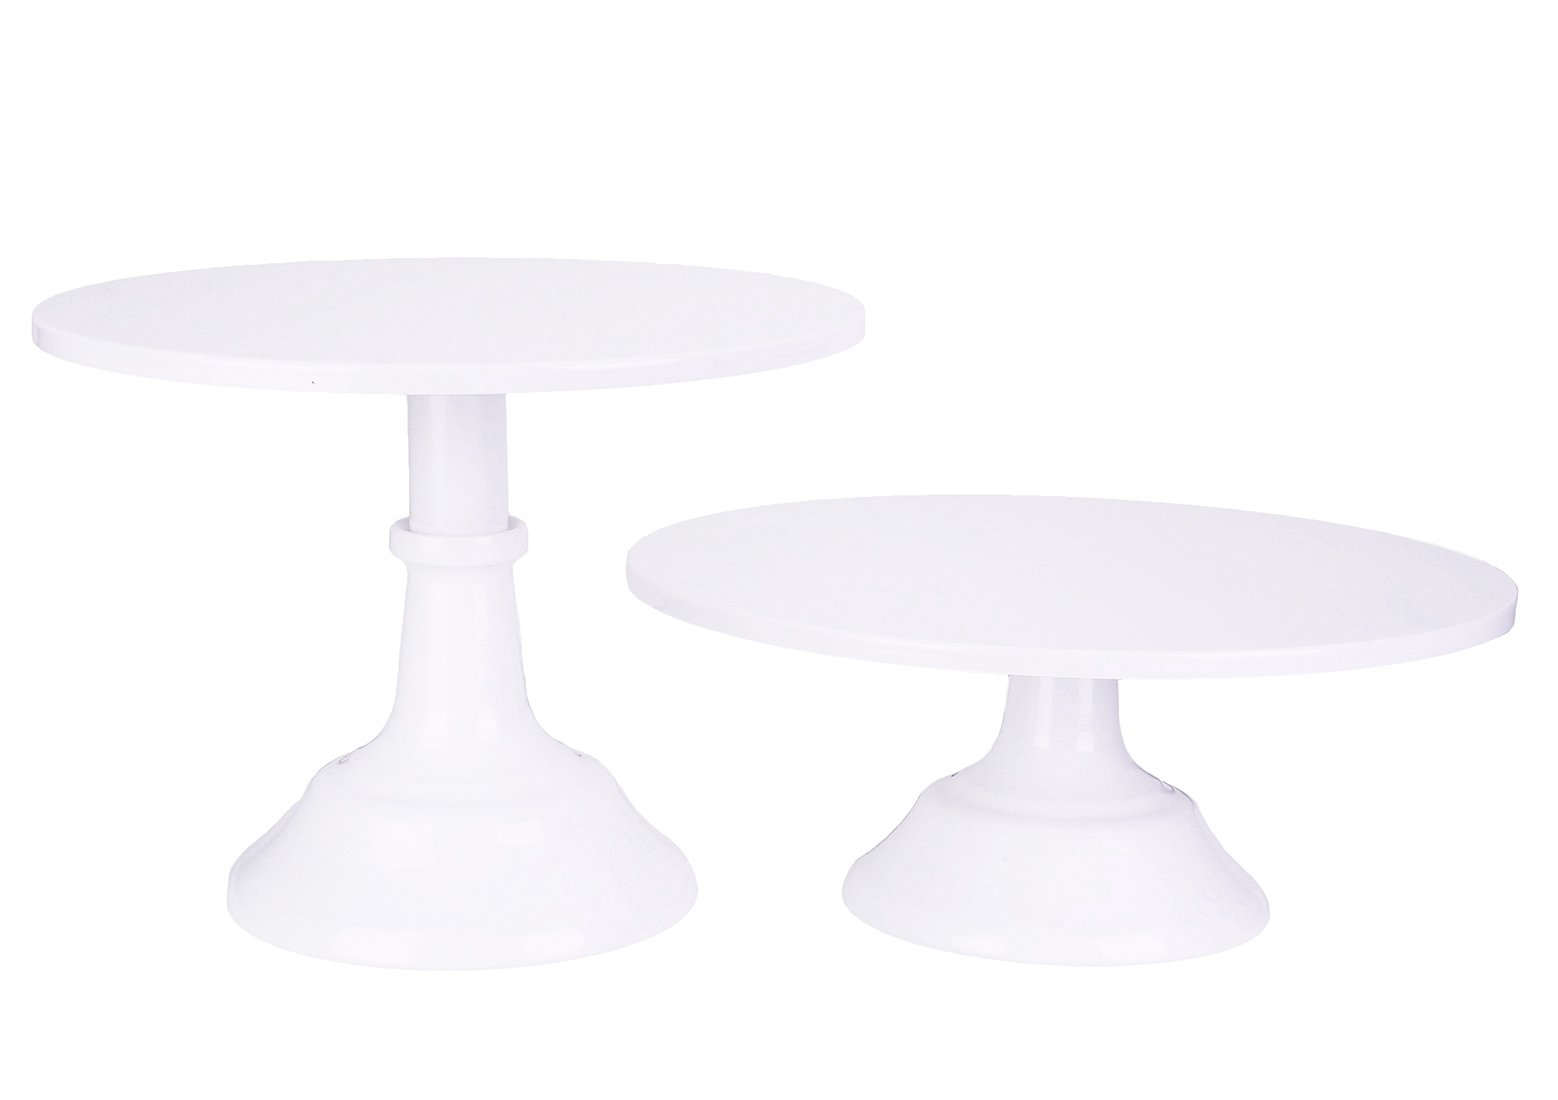 White BIA Cordon Bleu Small Round Porcelain Cake Stand 8-1//2-Inch by 3-3//4-Inch